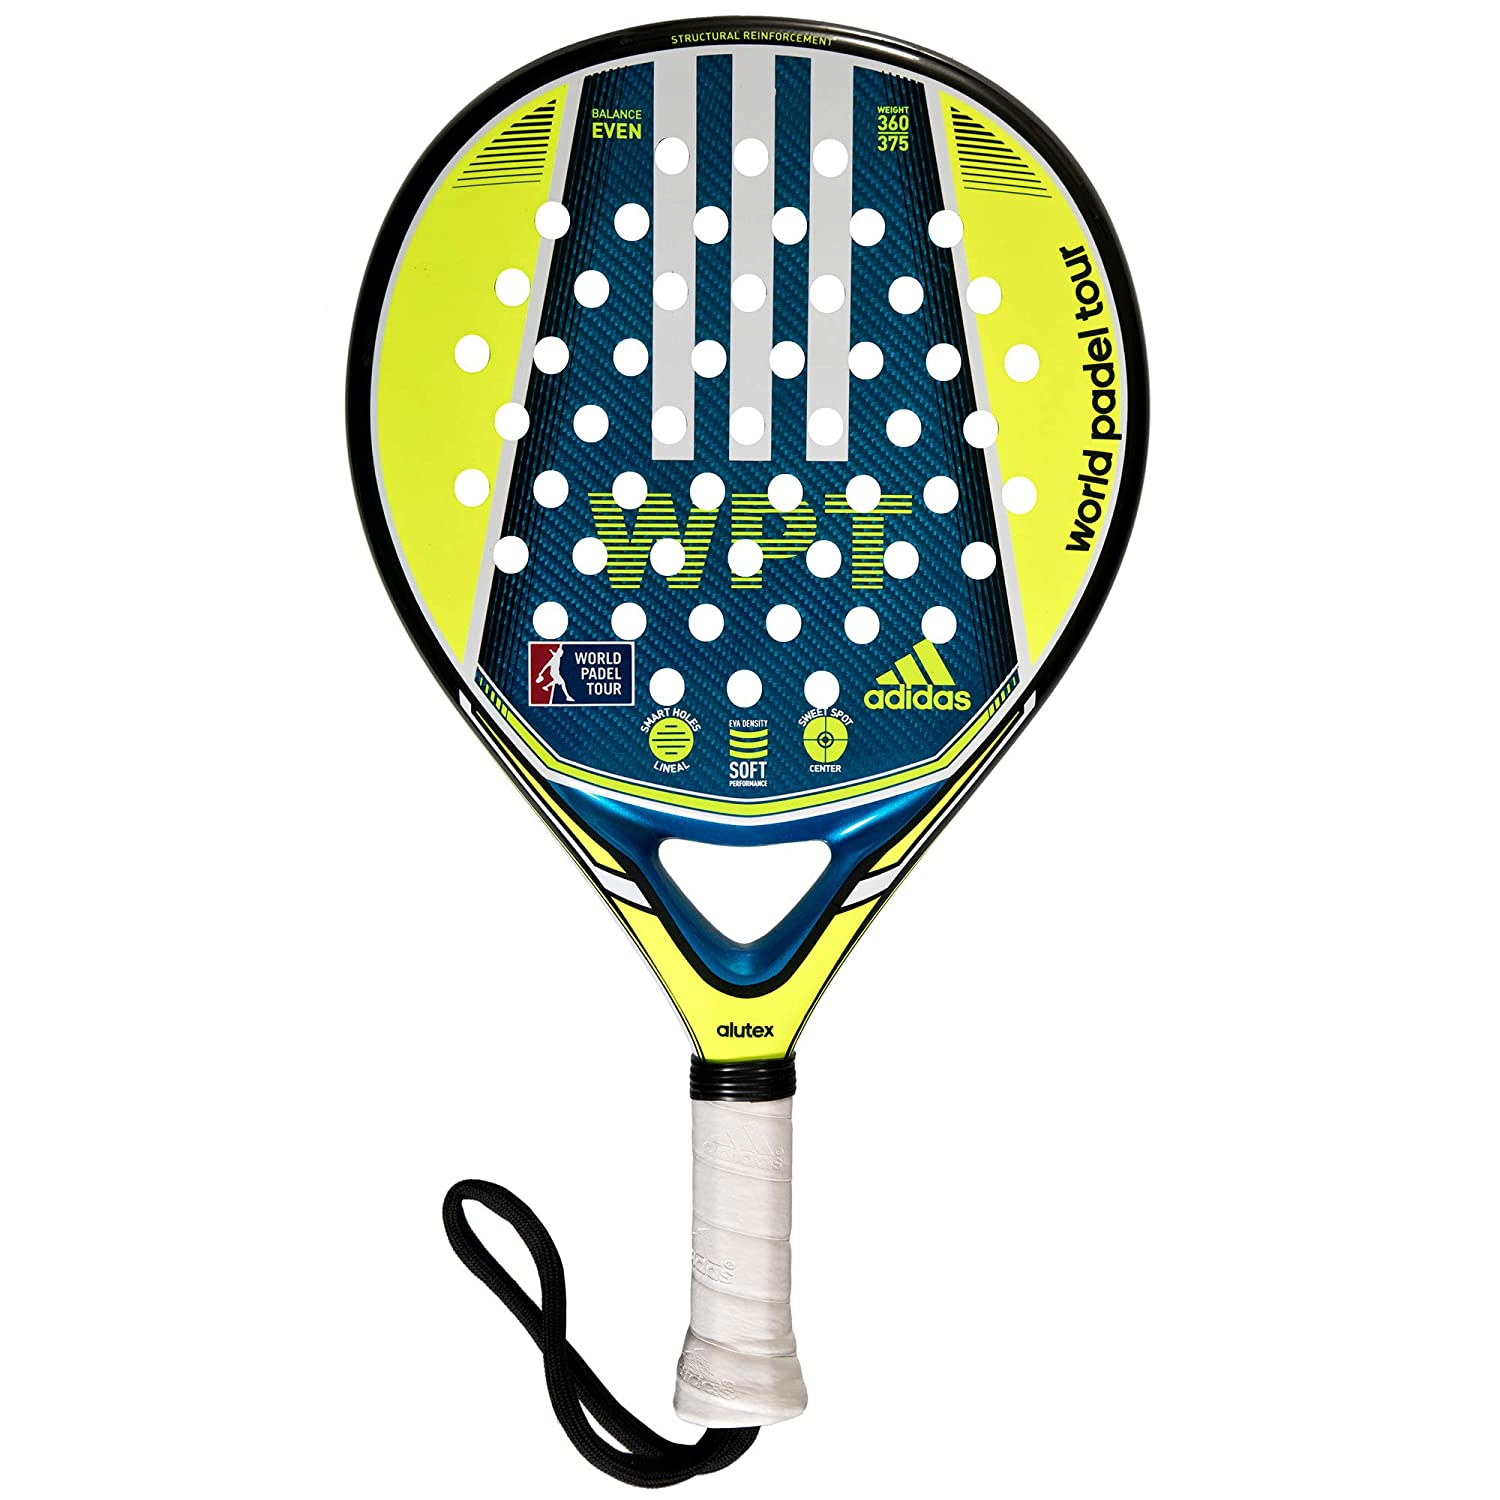 adidas Pala World Padel TOUR-360-365: Amazon.es: Deportes y aire libre